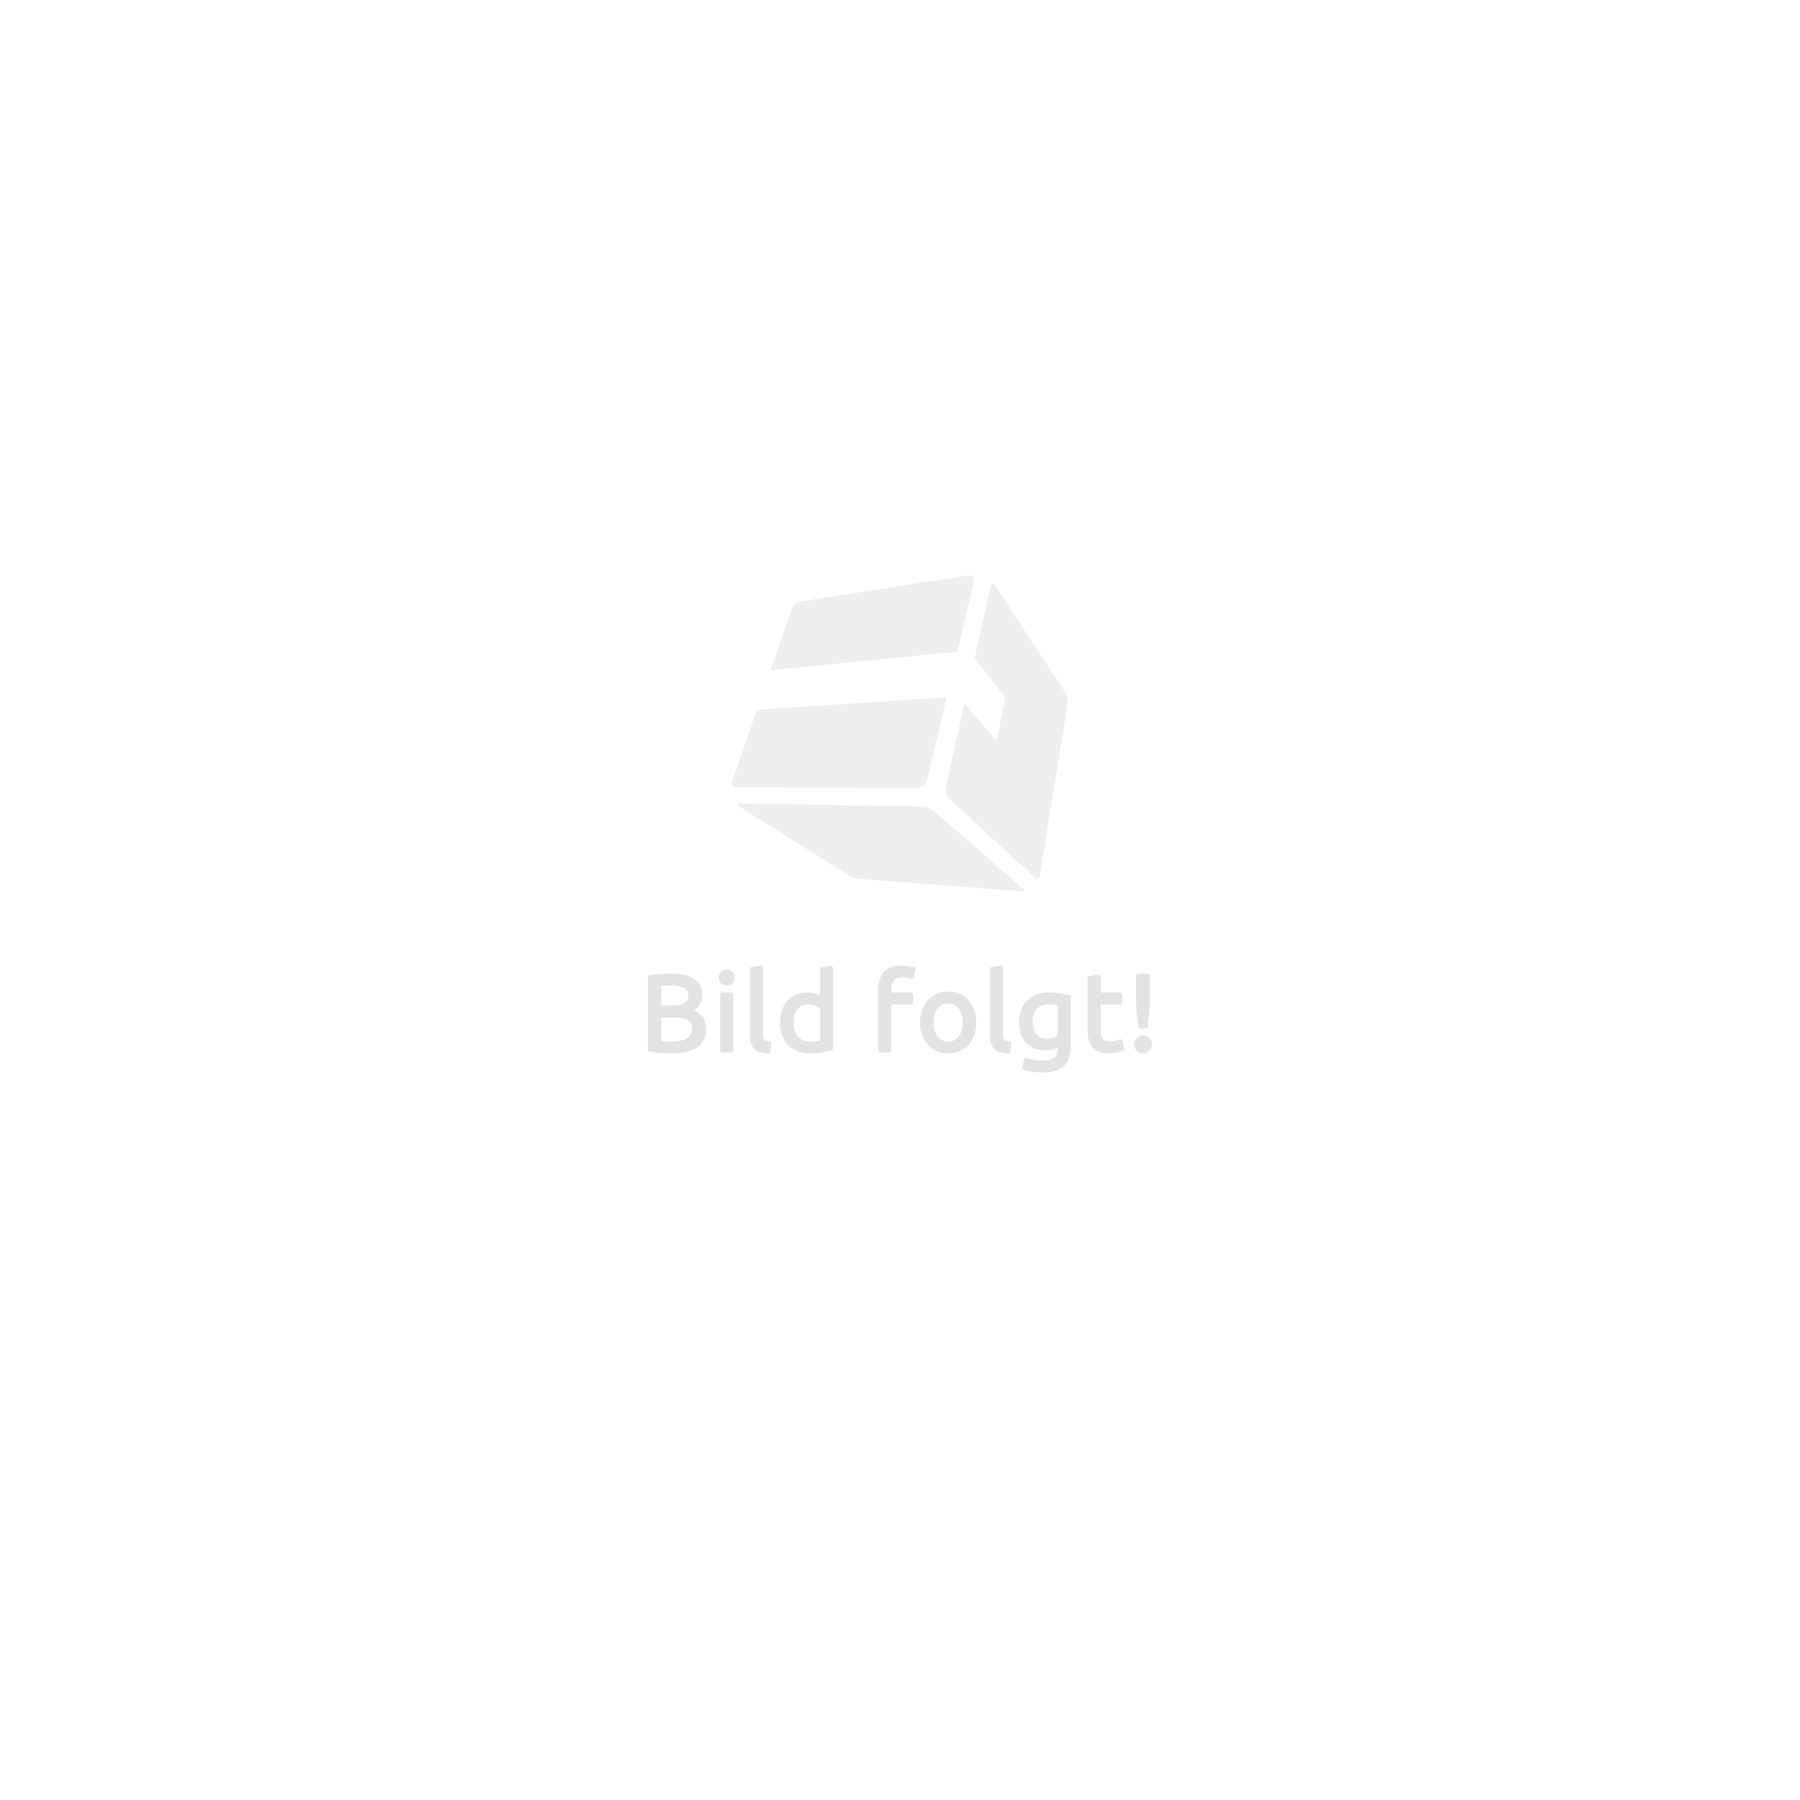 2 HVLP paint spray guns (0.8+ 1.3 mm) + mask + silicone remover